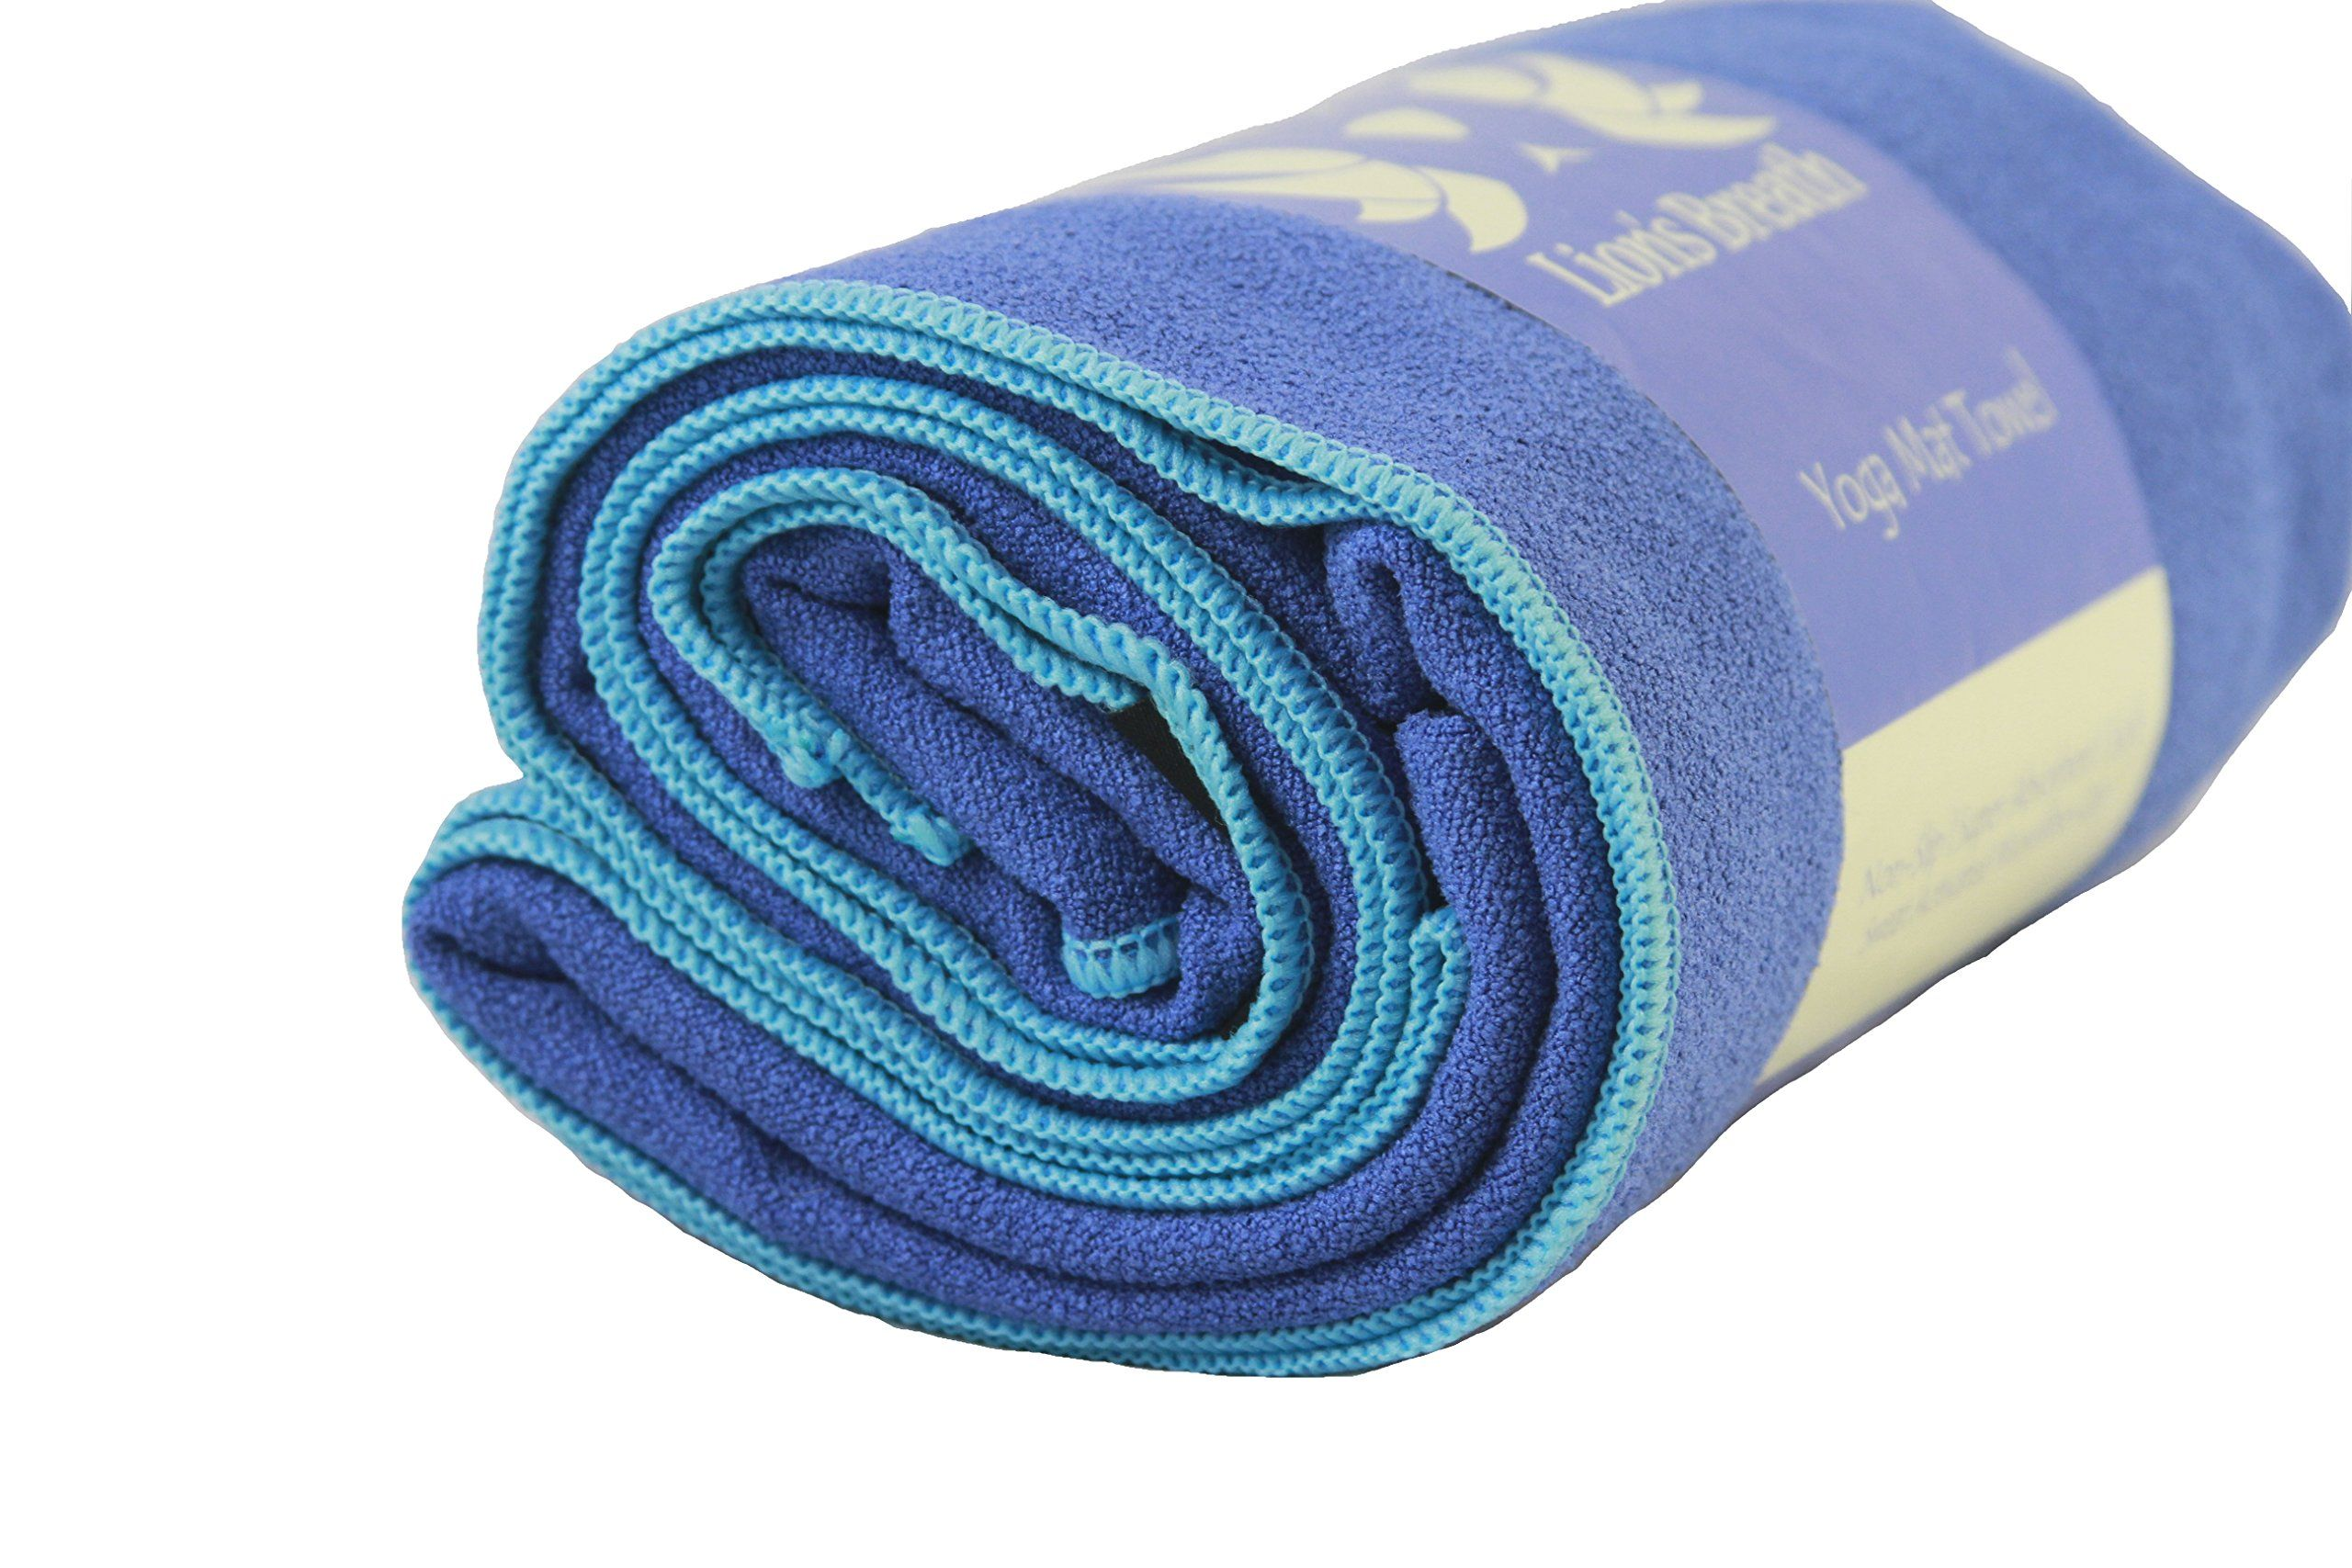 non slip id grey domyos by greyturquoise decathlon towels turquoise towel absorbent yoga mats mat